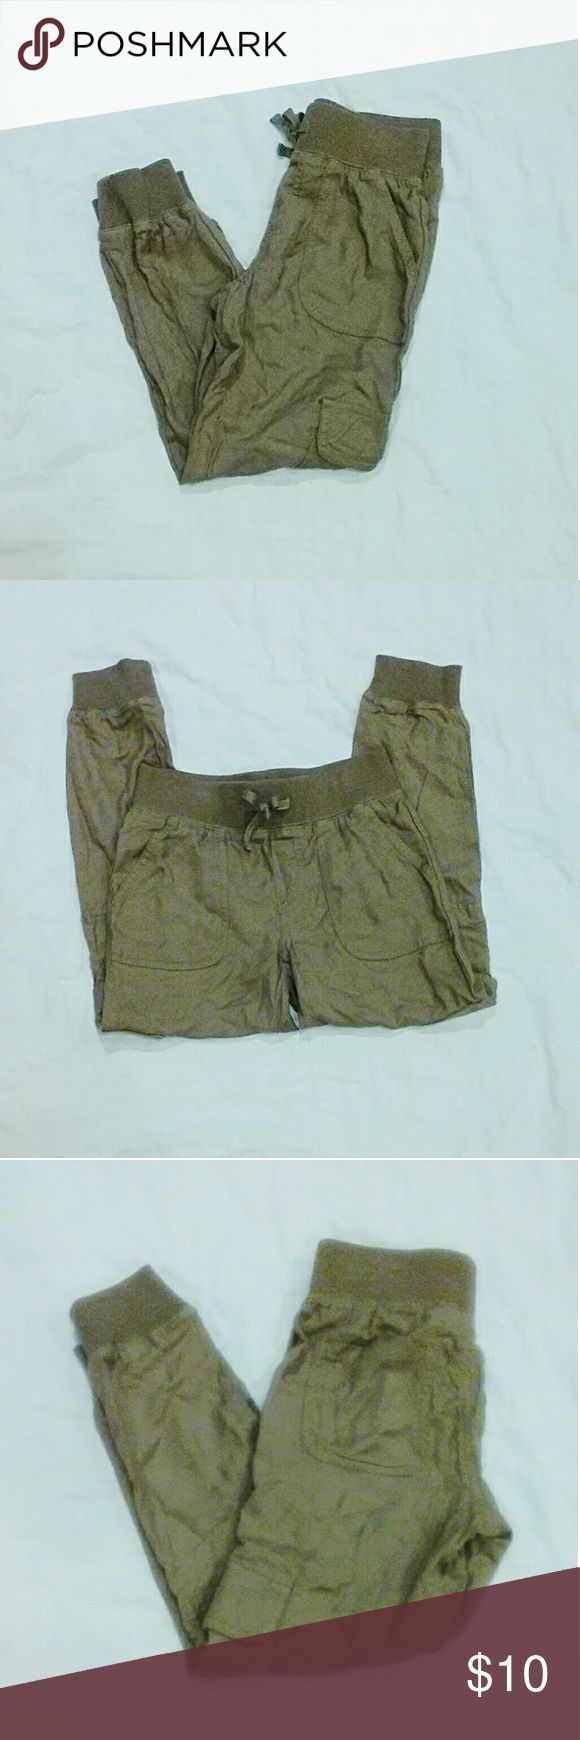 Mud Size 8 Girl Khaki Jogger Pants Pre-owned but in Great Condition. Total of 6 pockets. Two front, two back, and one on each side of the leg. Waist has string to tighten or loosen. Mudd Bottoms